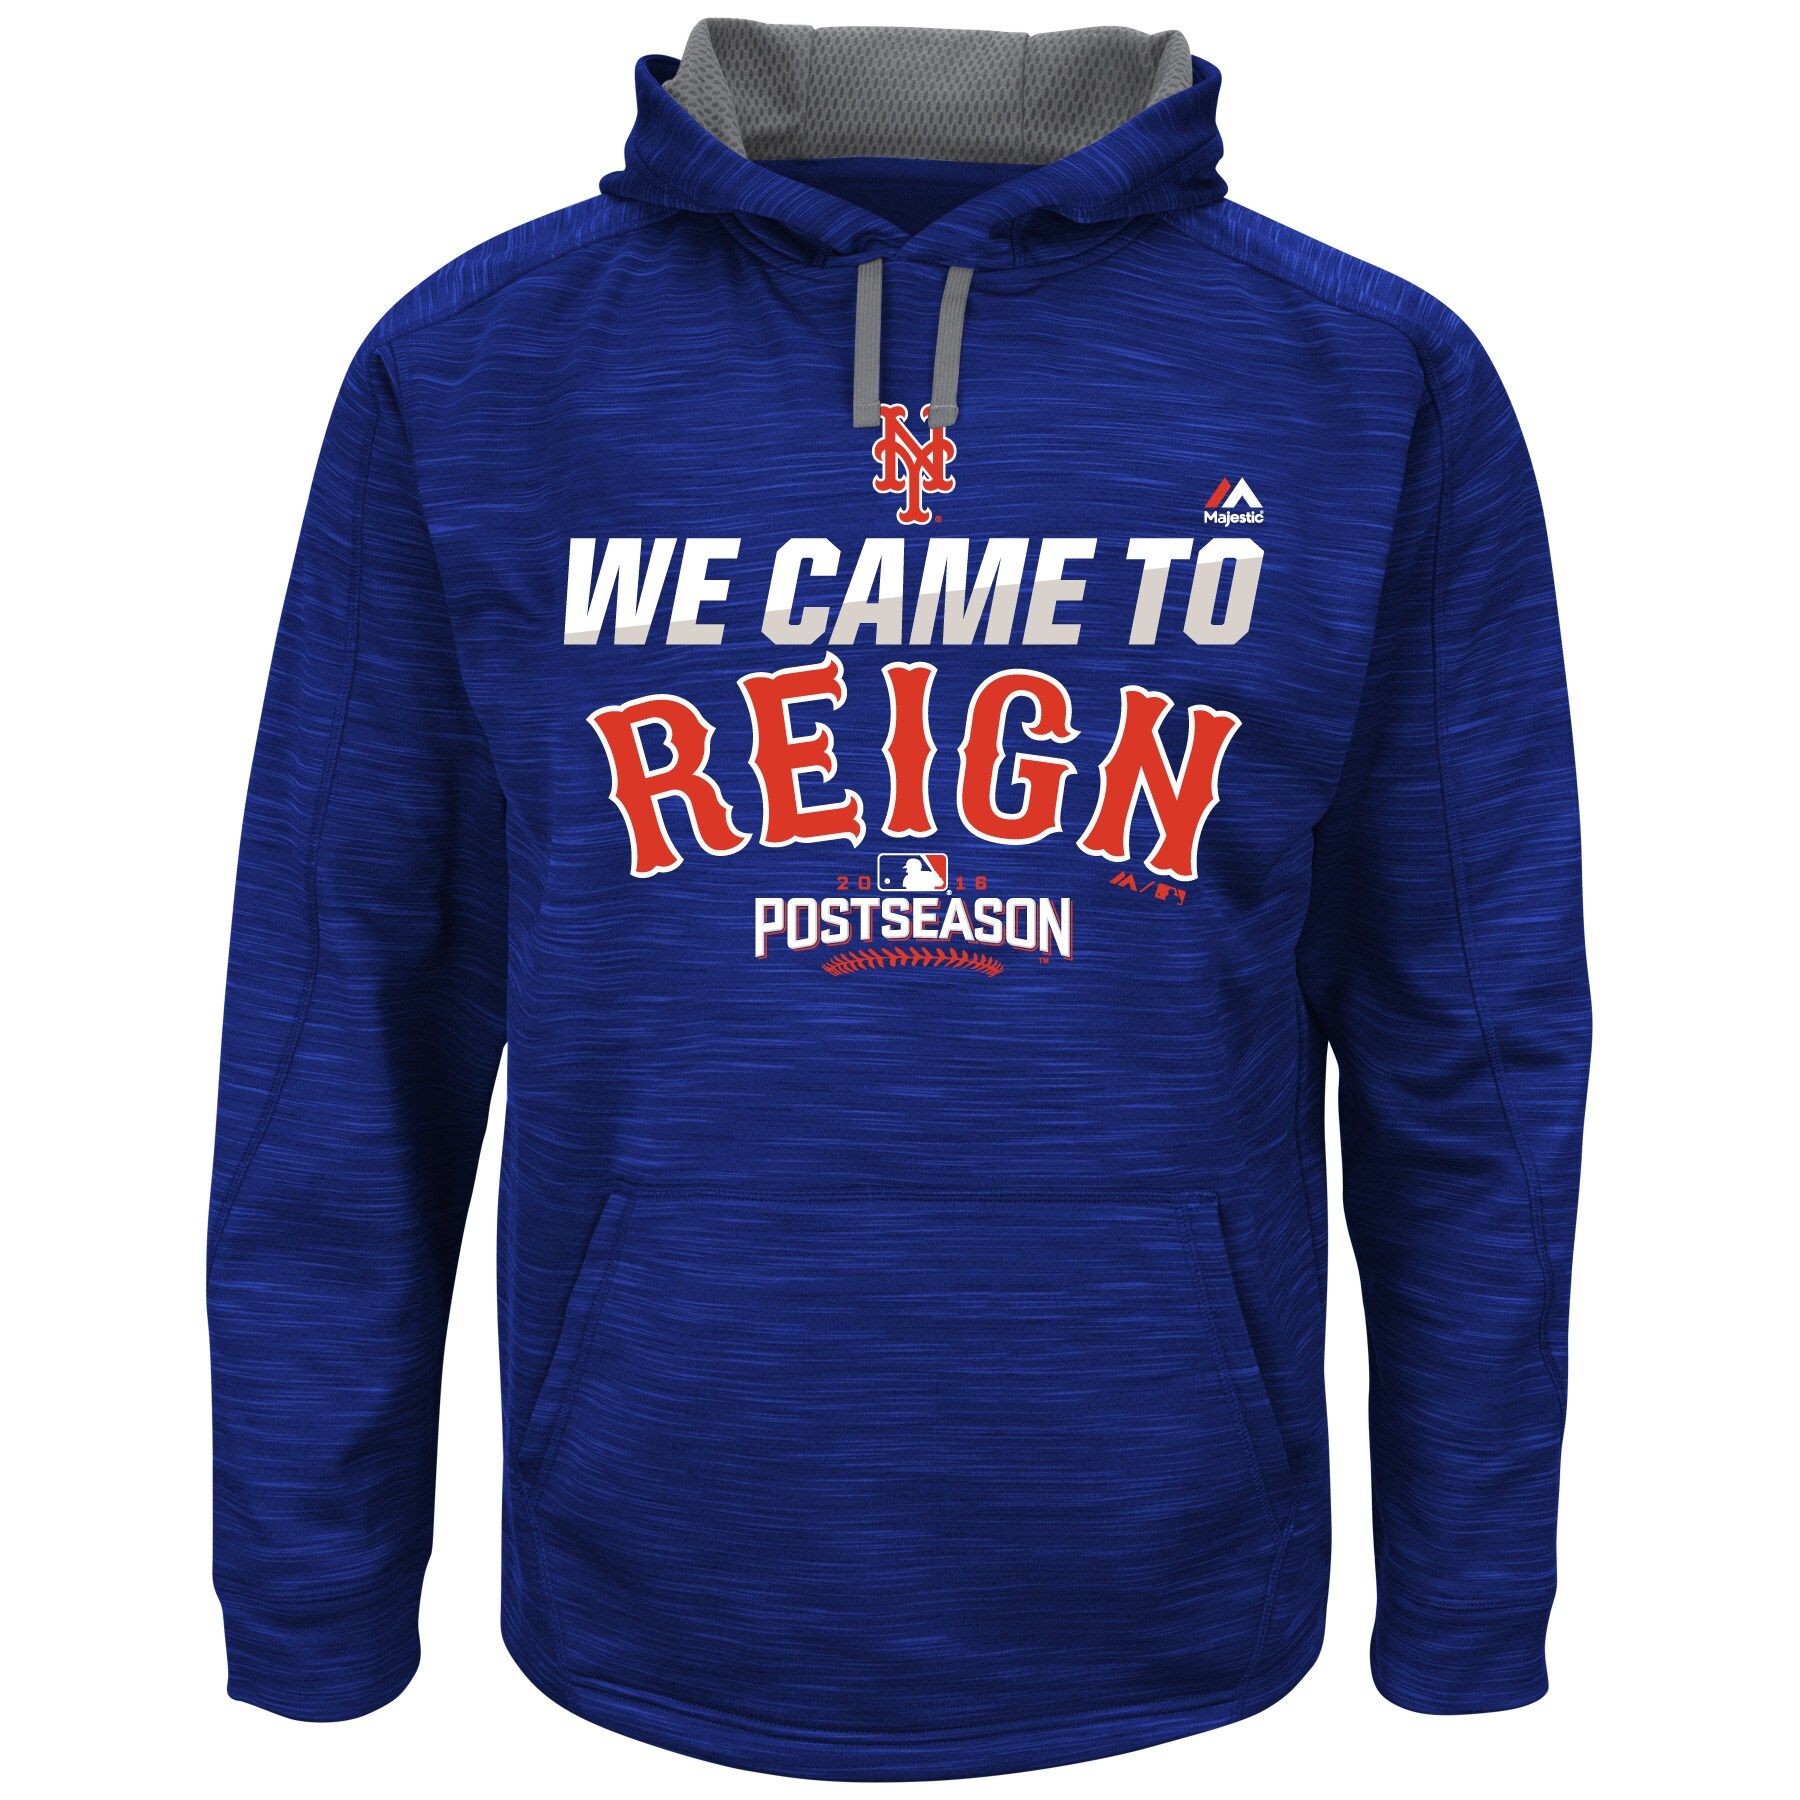 New York Mets Majestic 2016 Postseason Authentic Collection Came To Reign Streak Hoodie - Royal